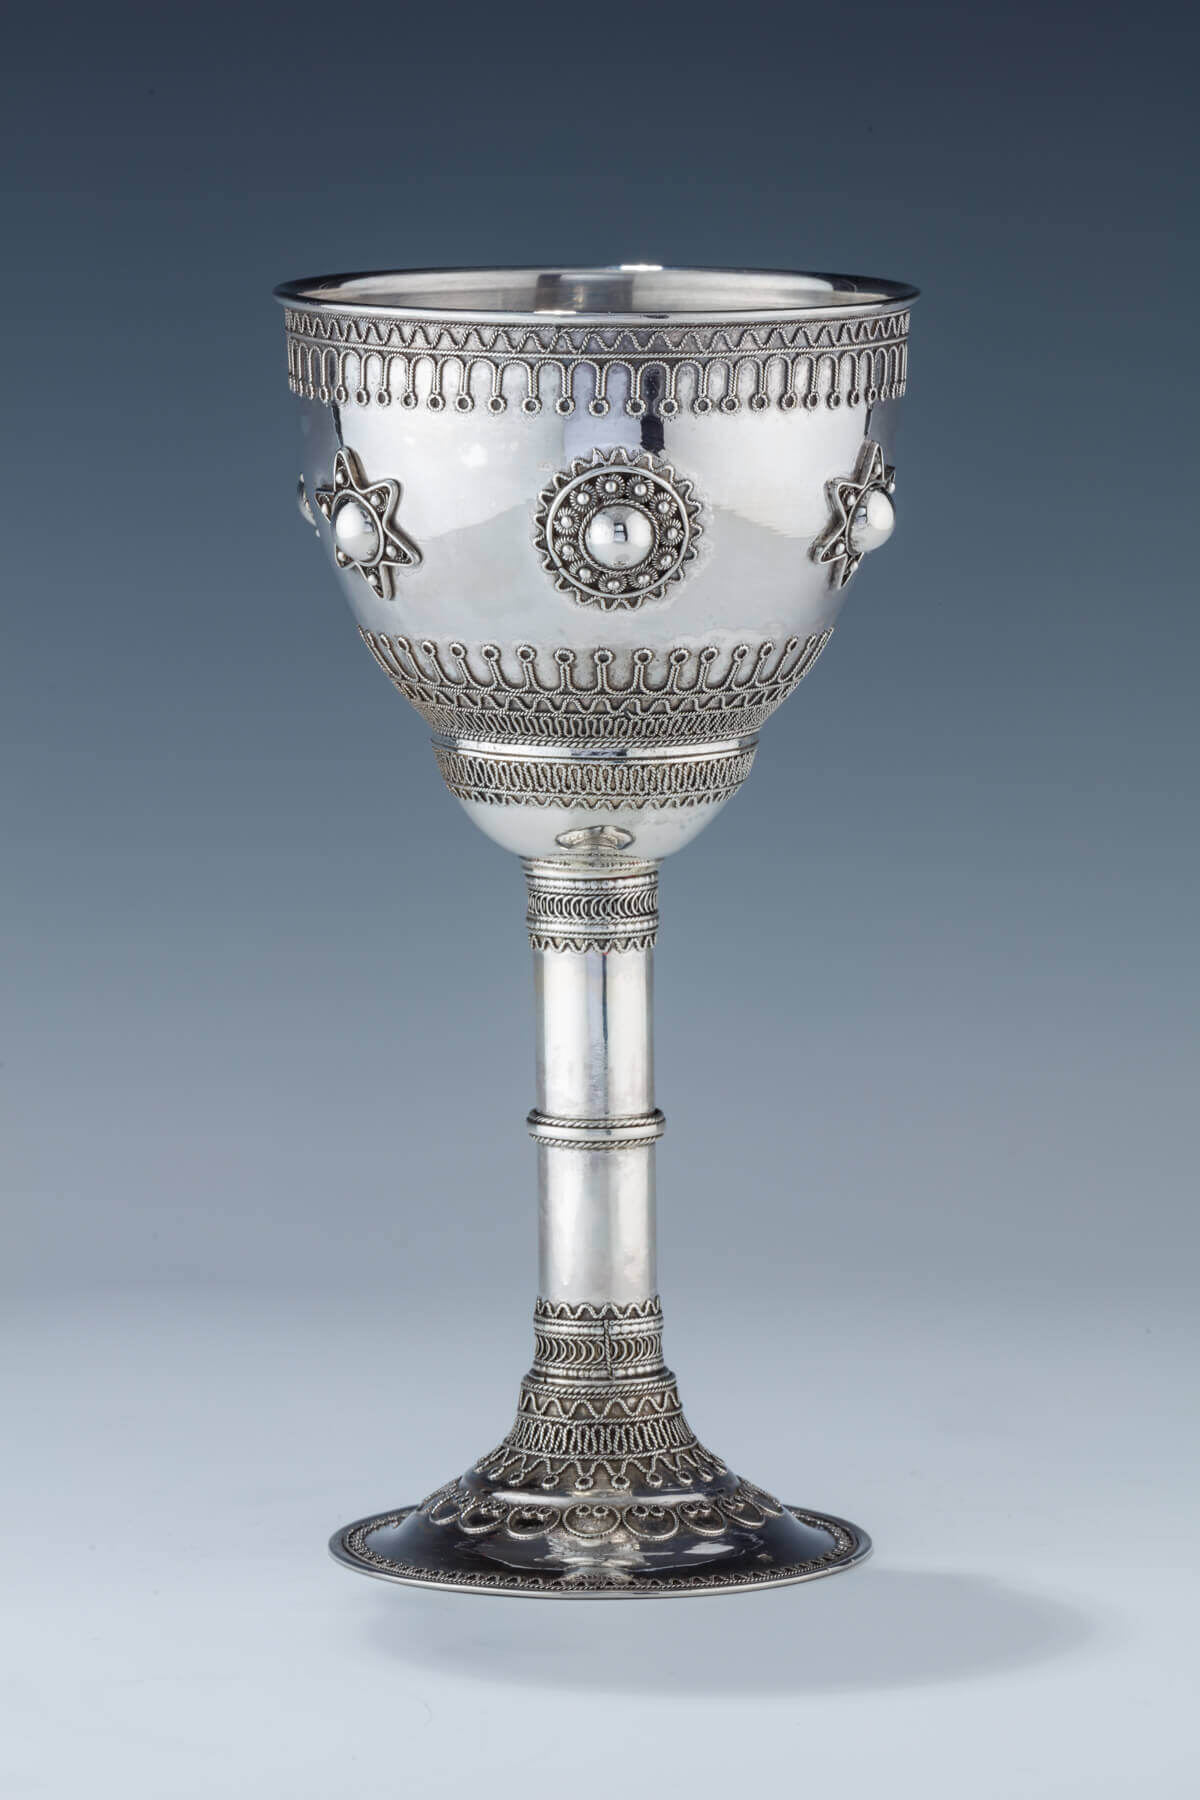 024. A LARGE STERLING SILVER KIDDUSH GOBLET